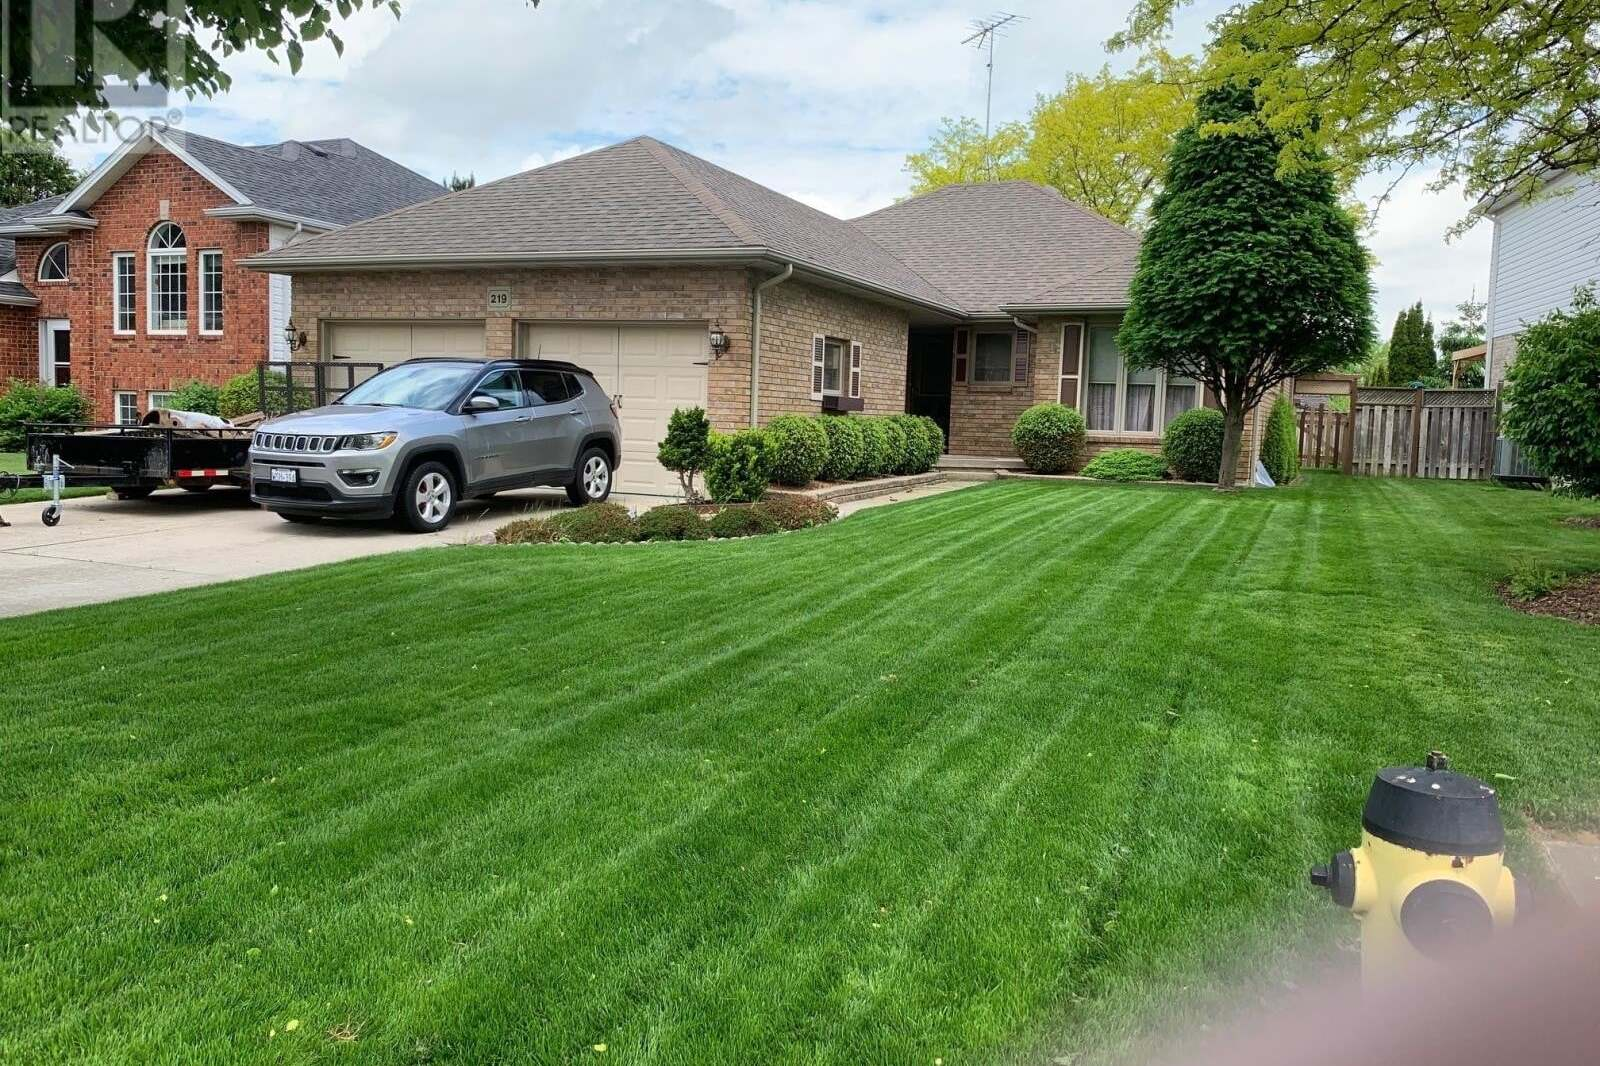 House for sale at 219 Valley Rd Chatham Ontario - MLS: 20005971